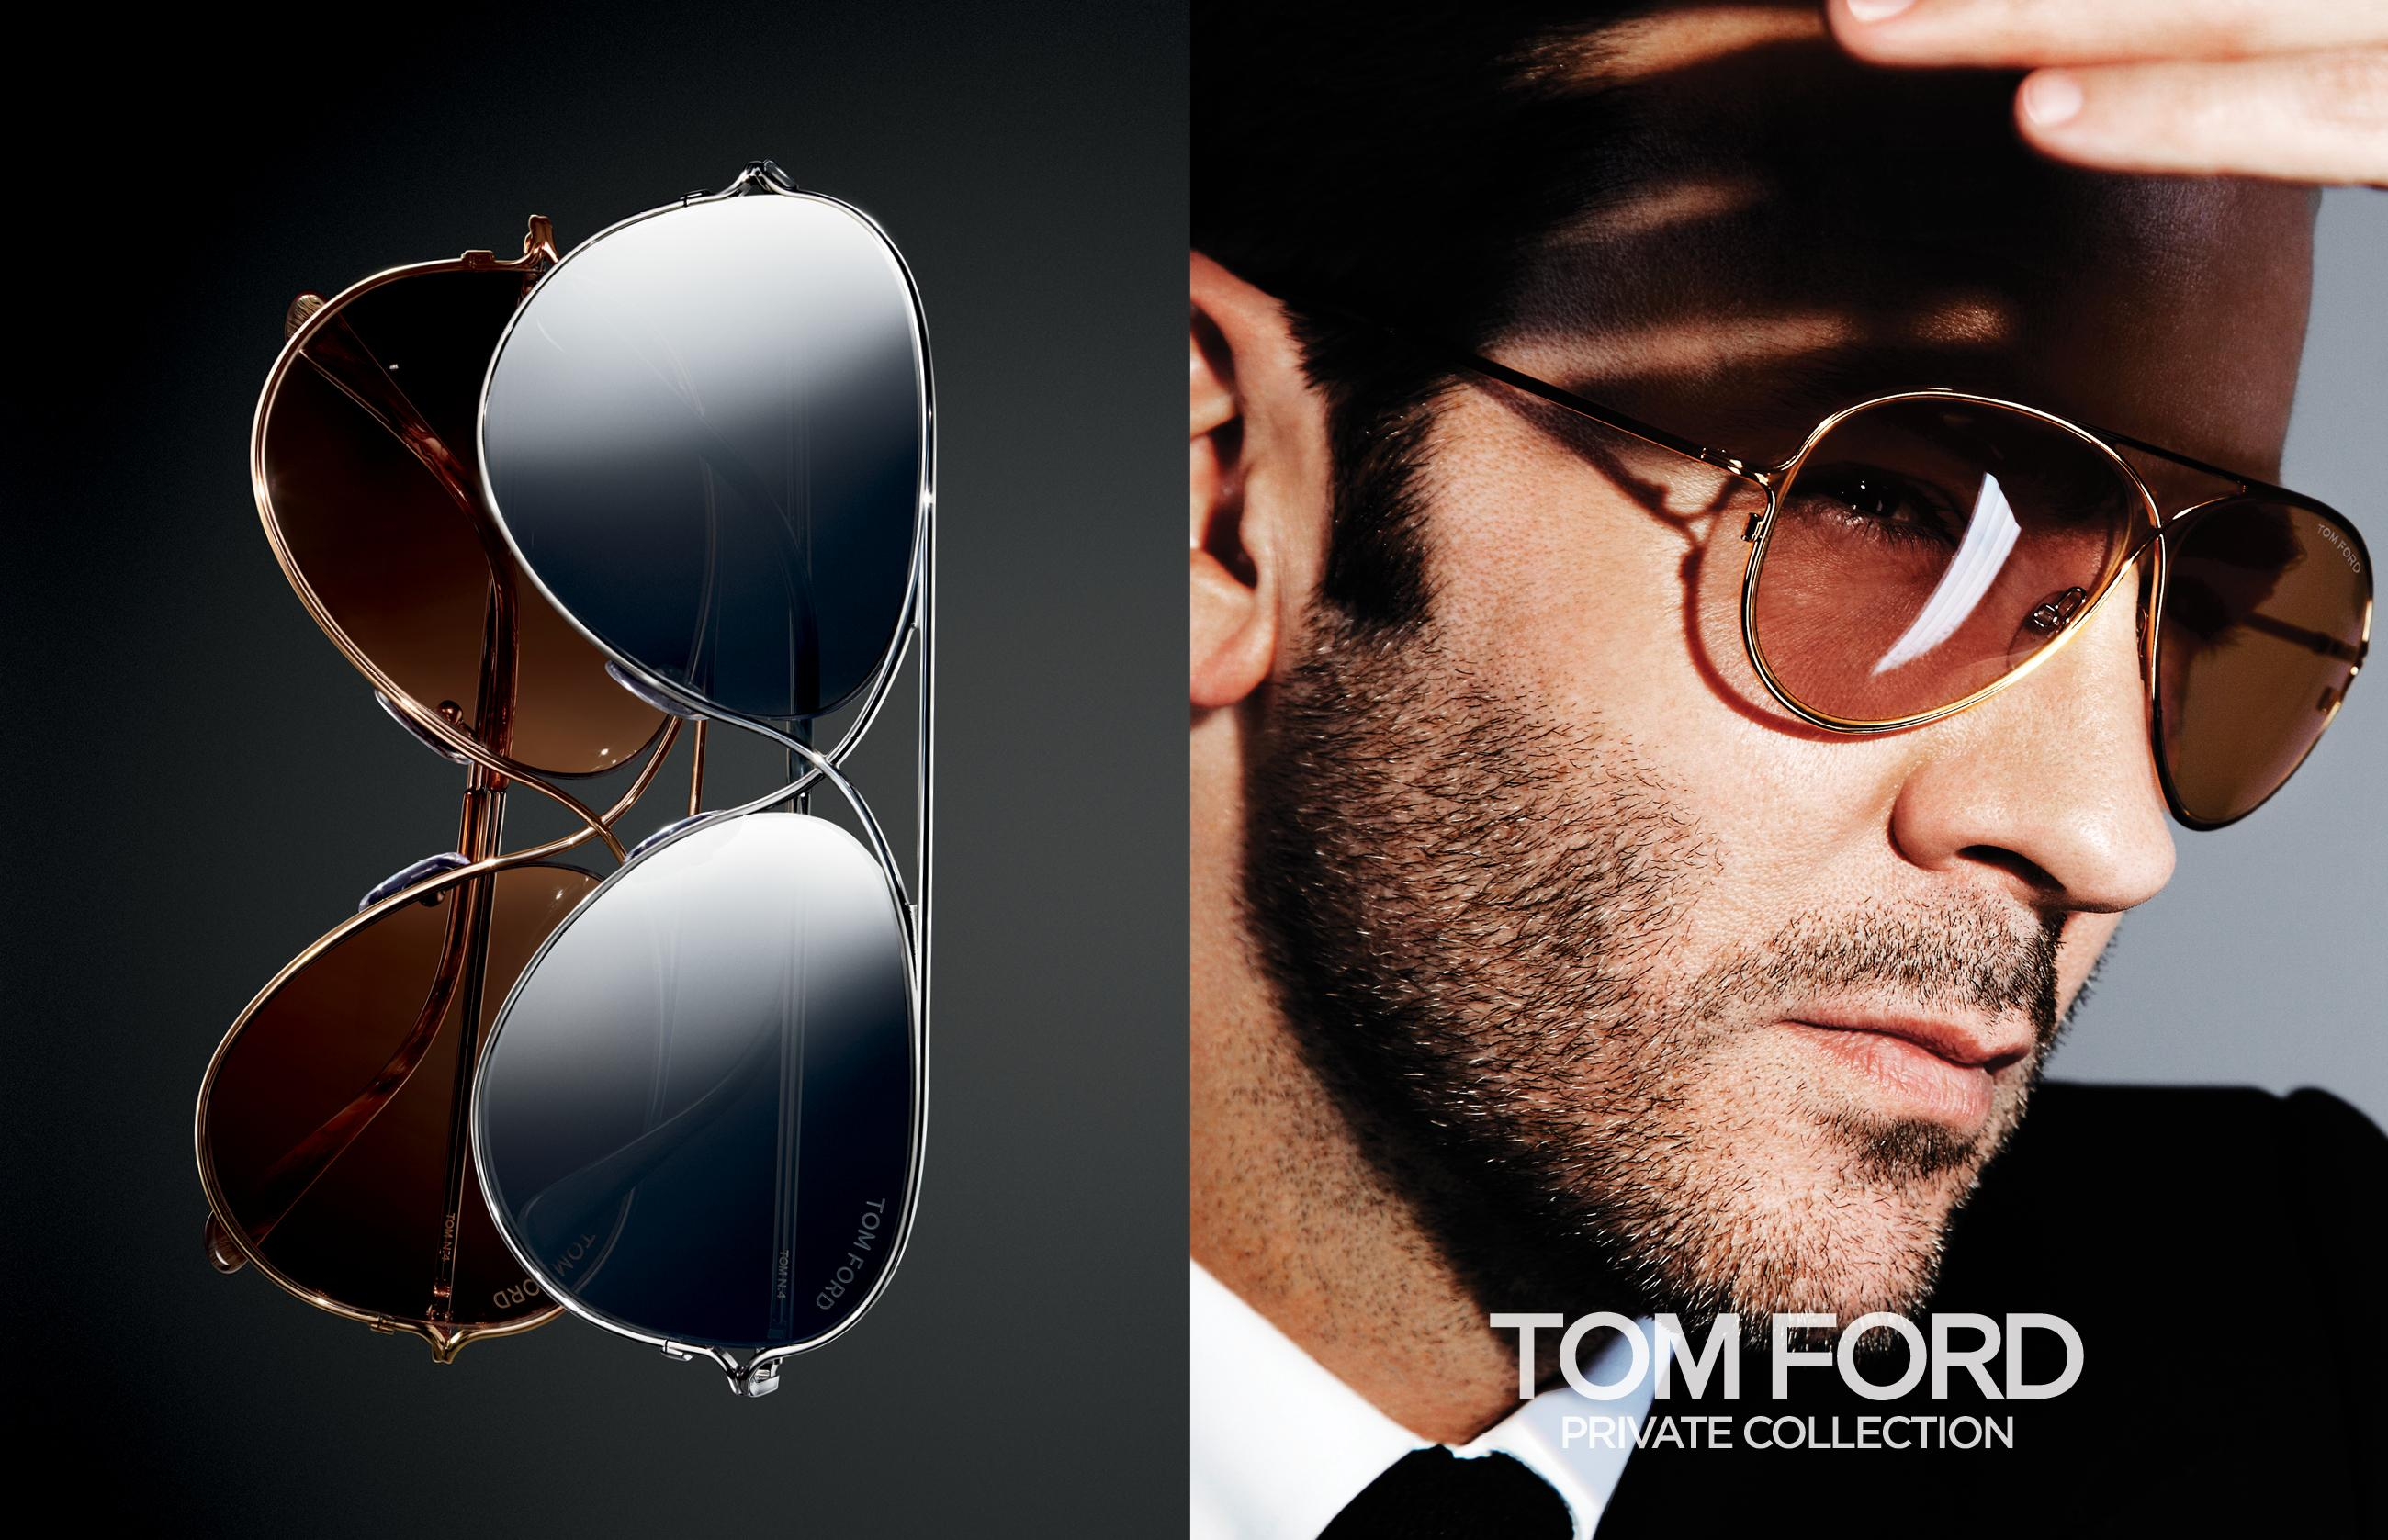 Tom Ford Launches Private Eyewear Collection Tomford Com